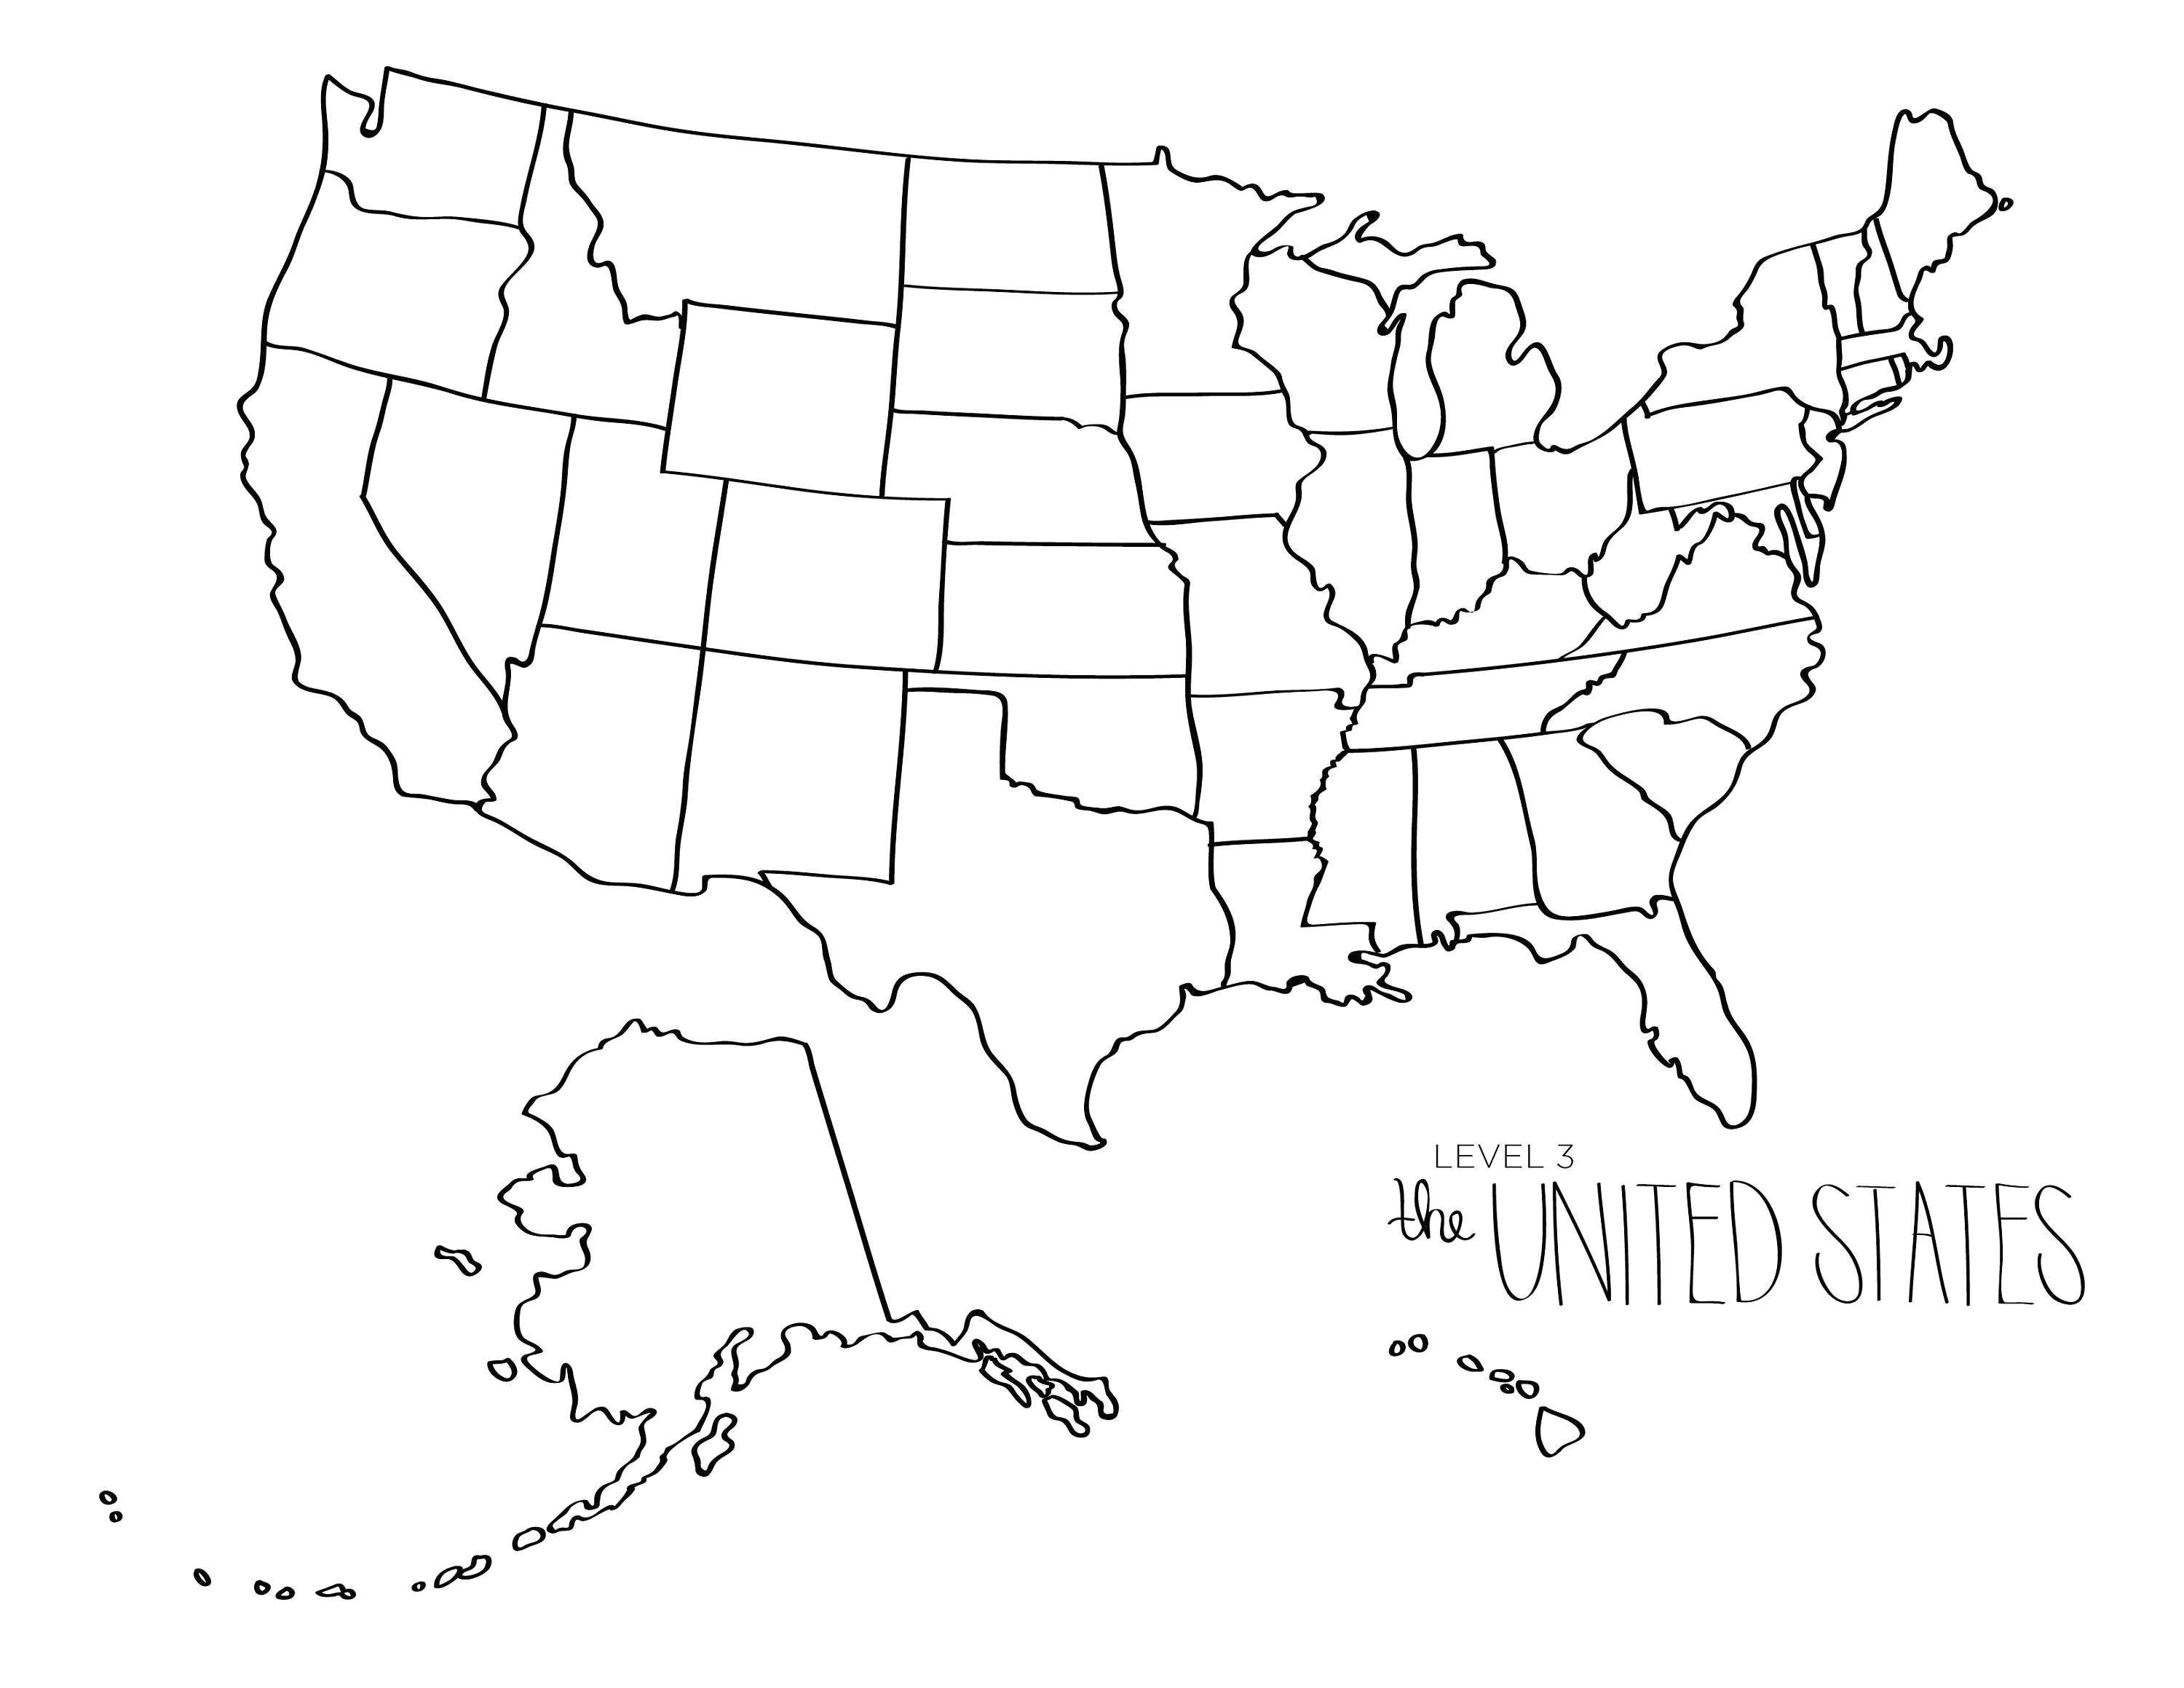 united states map drawing new how to draw a united states map fresh draw united states